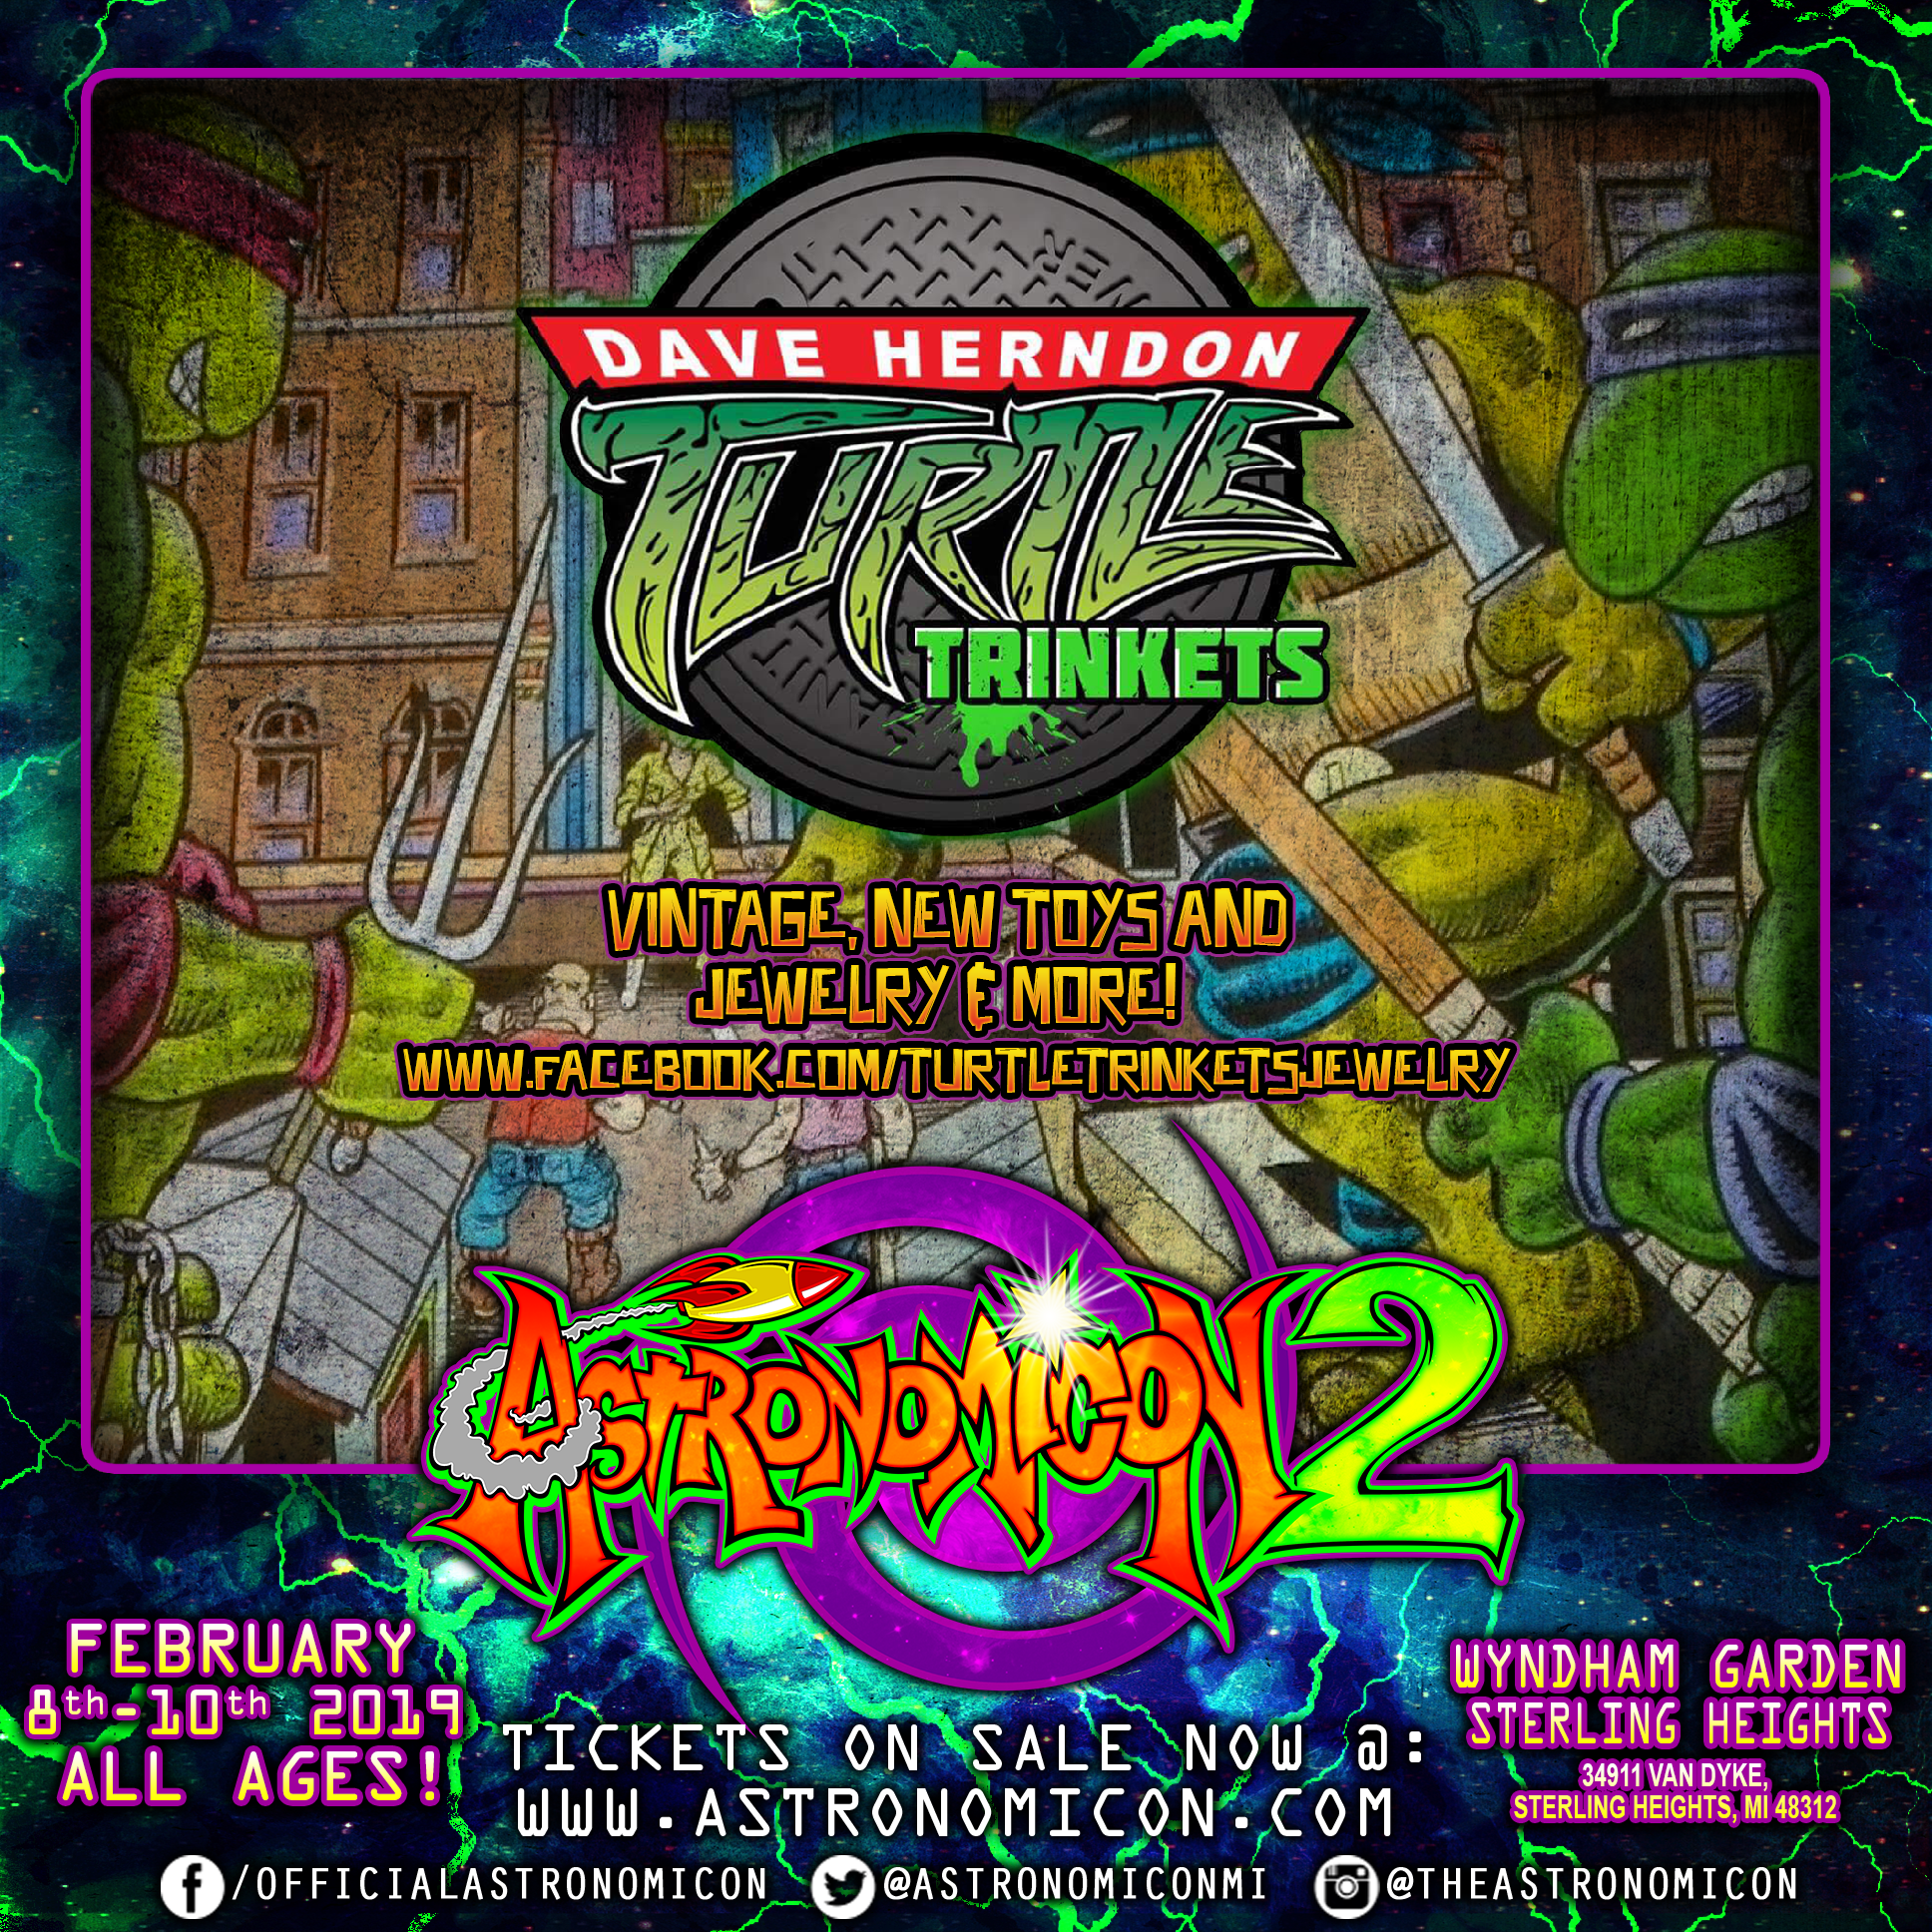 Astronomicon 2 Artistic Turtle Trinkets IG Ad.png